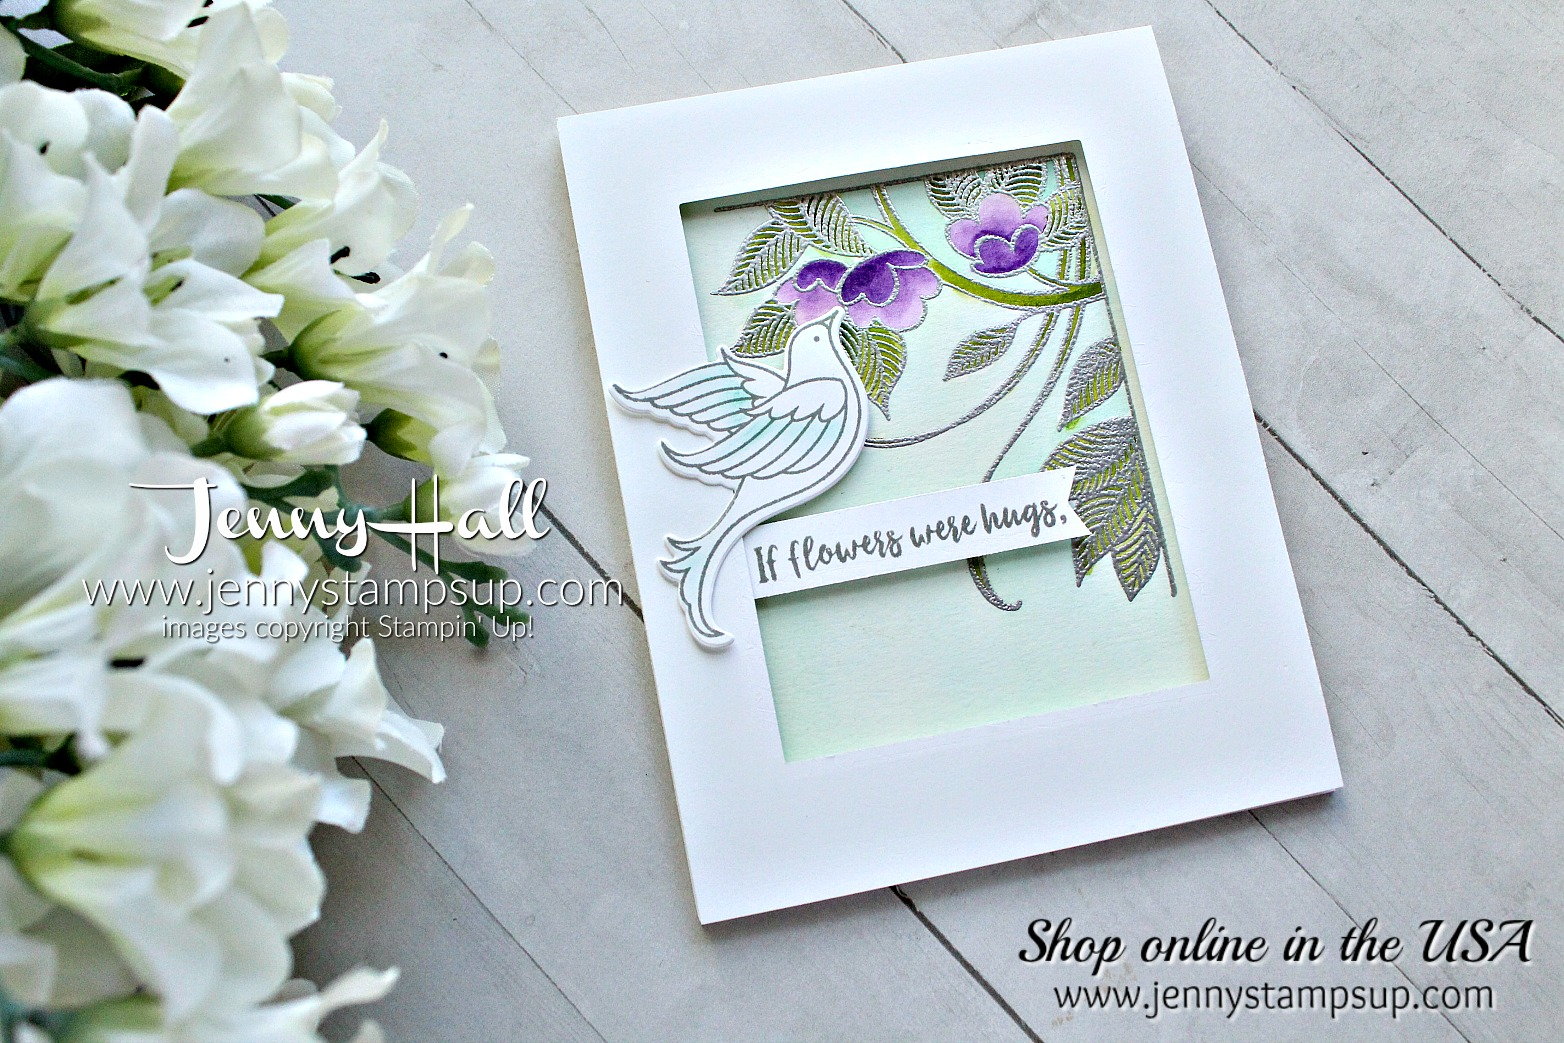 Serene Garden watercolor card created by Jenny Hall at www.jennystampsup.com for #cardmaking #designteam #serenegarden #watercolor #gorgeousgrape #dove #stampinkpaperchallenge #jennyhall #jennyhallstampinup #jennystampsup #jennyhalldesign #stampinup #stamping #papercrafting #crafts #craftsforkids